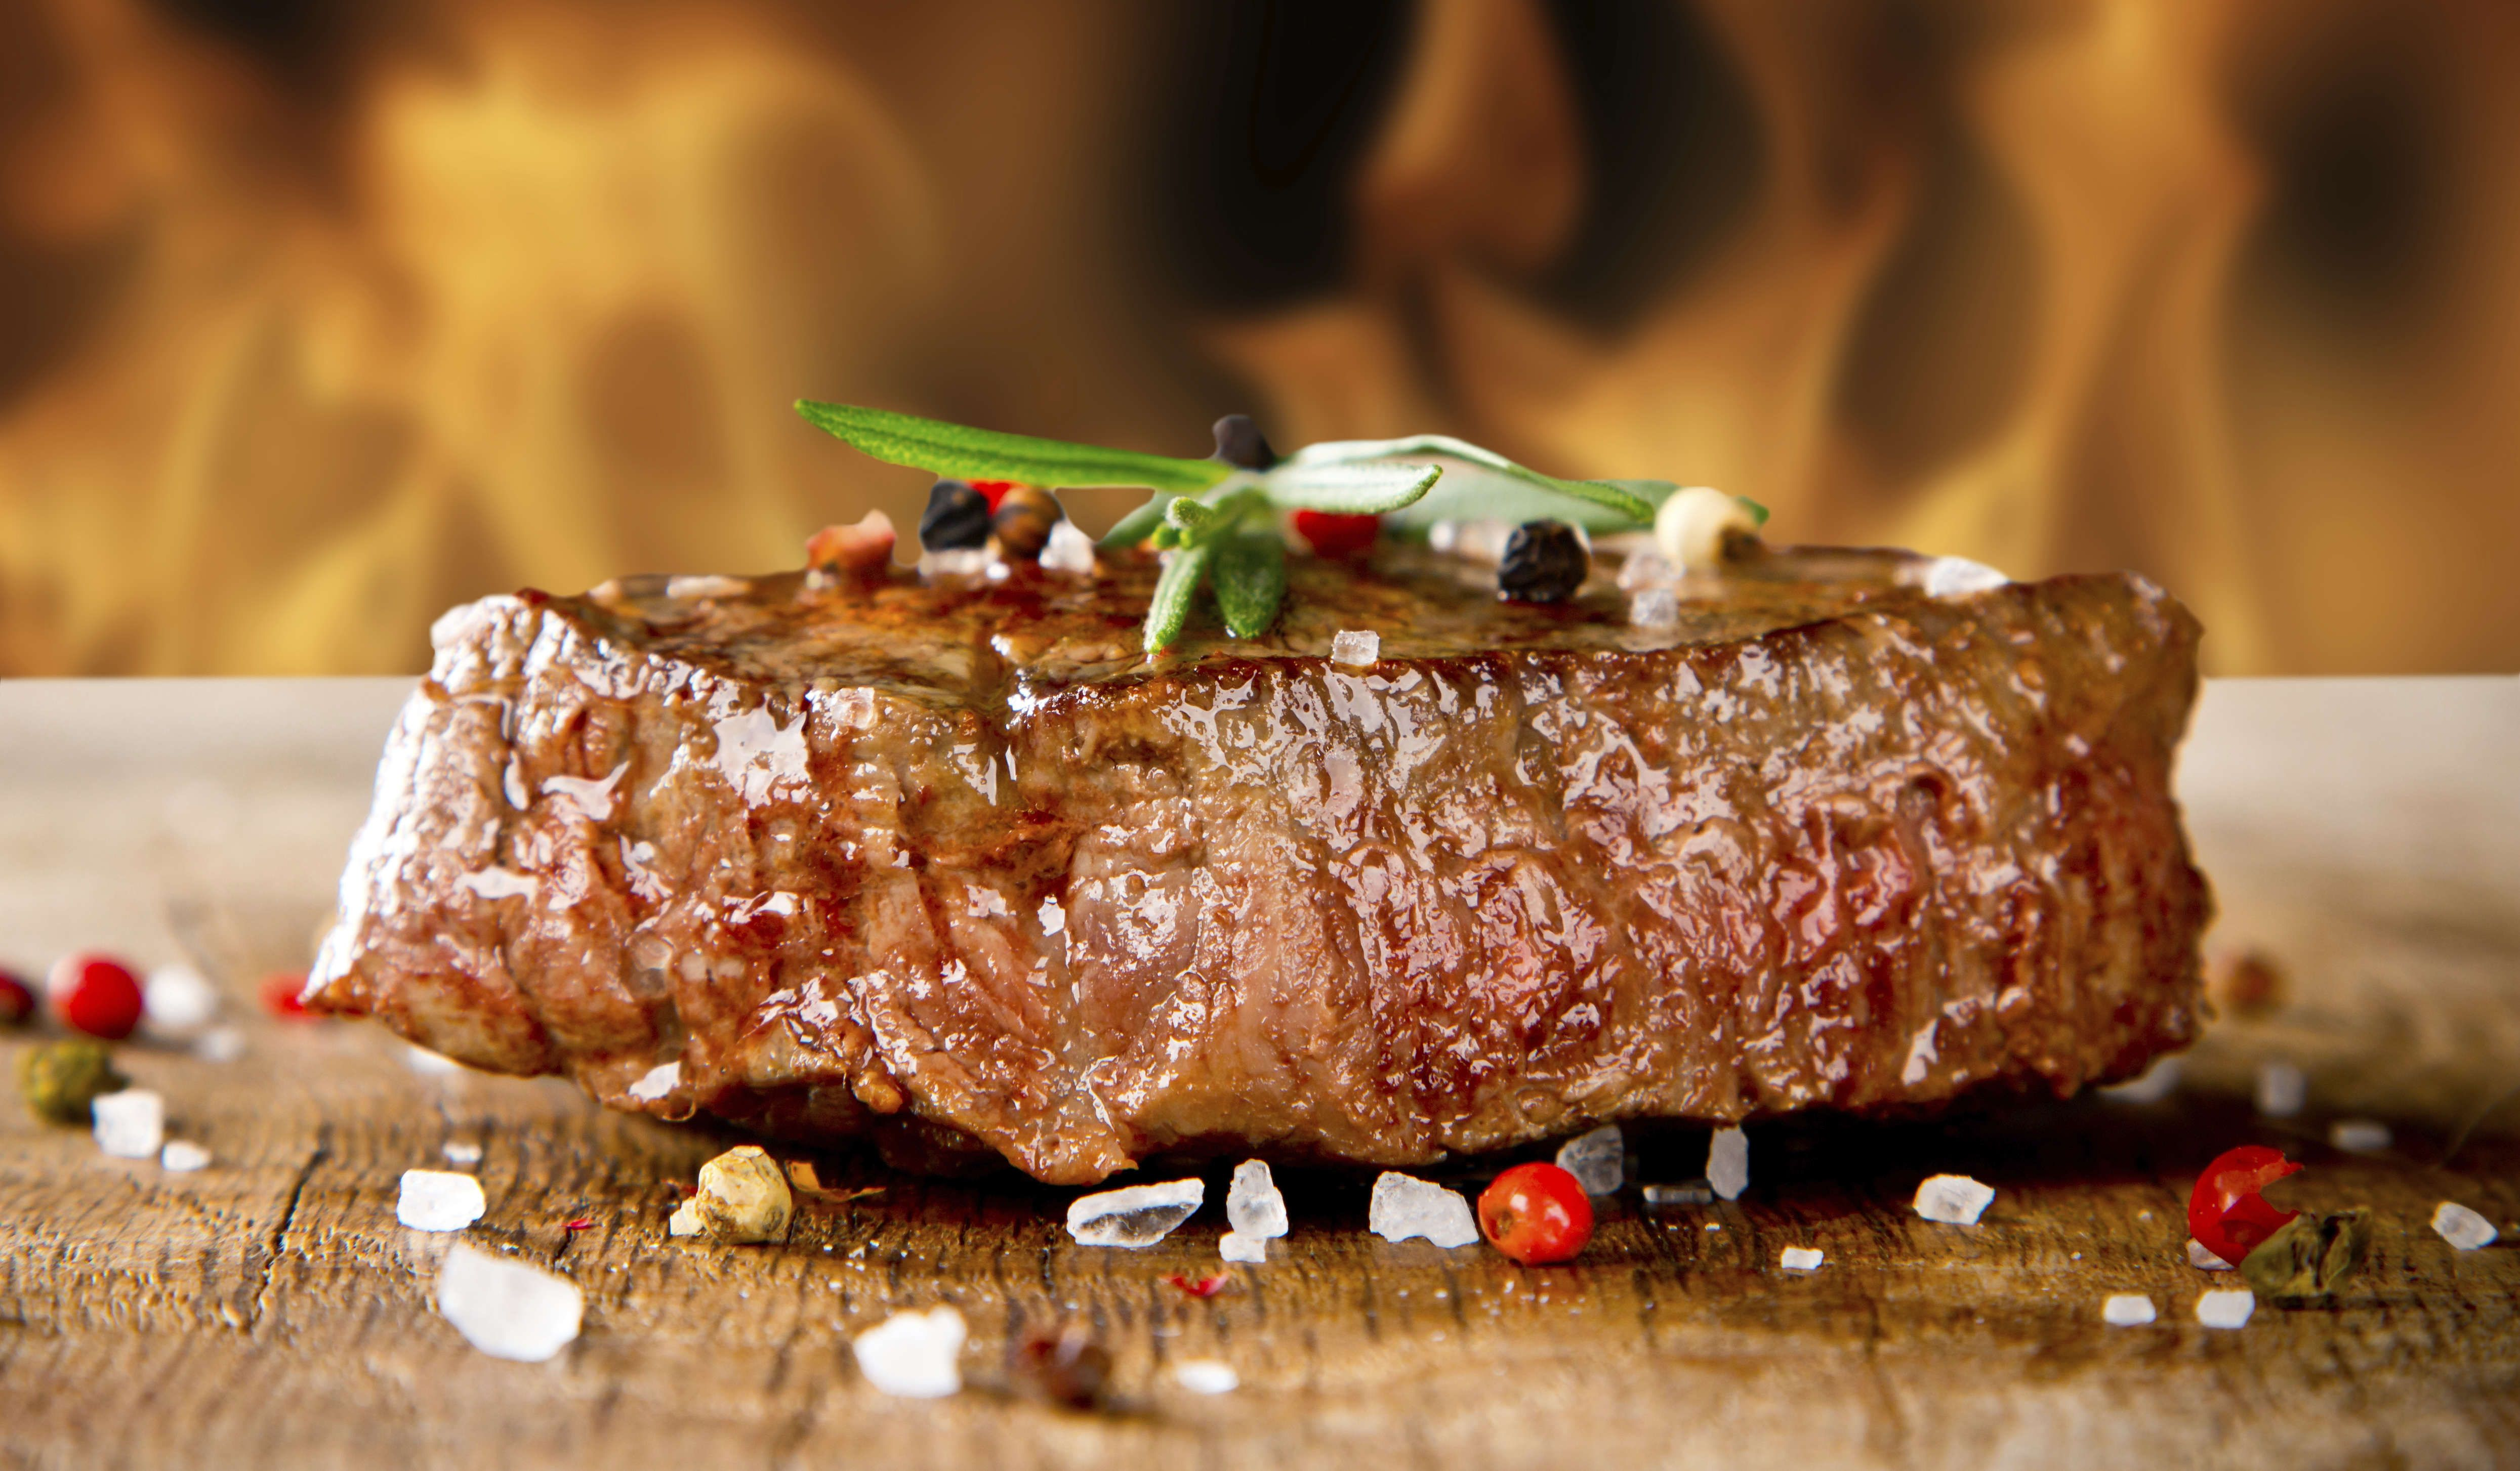 Delicious beef steak on grill